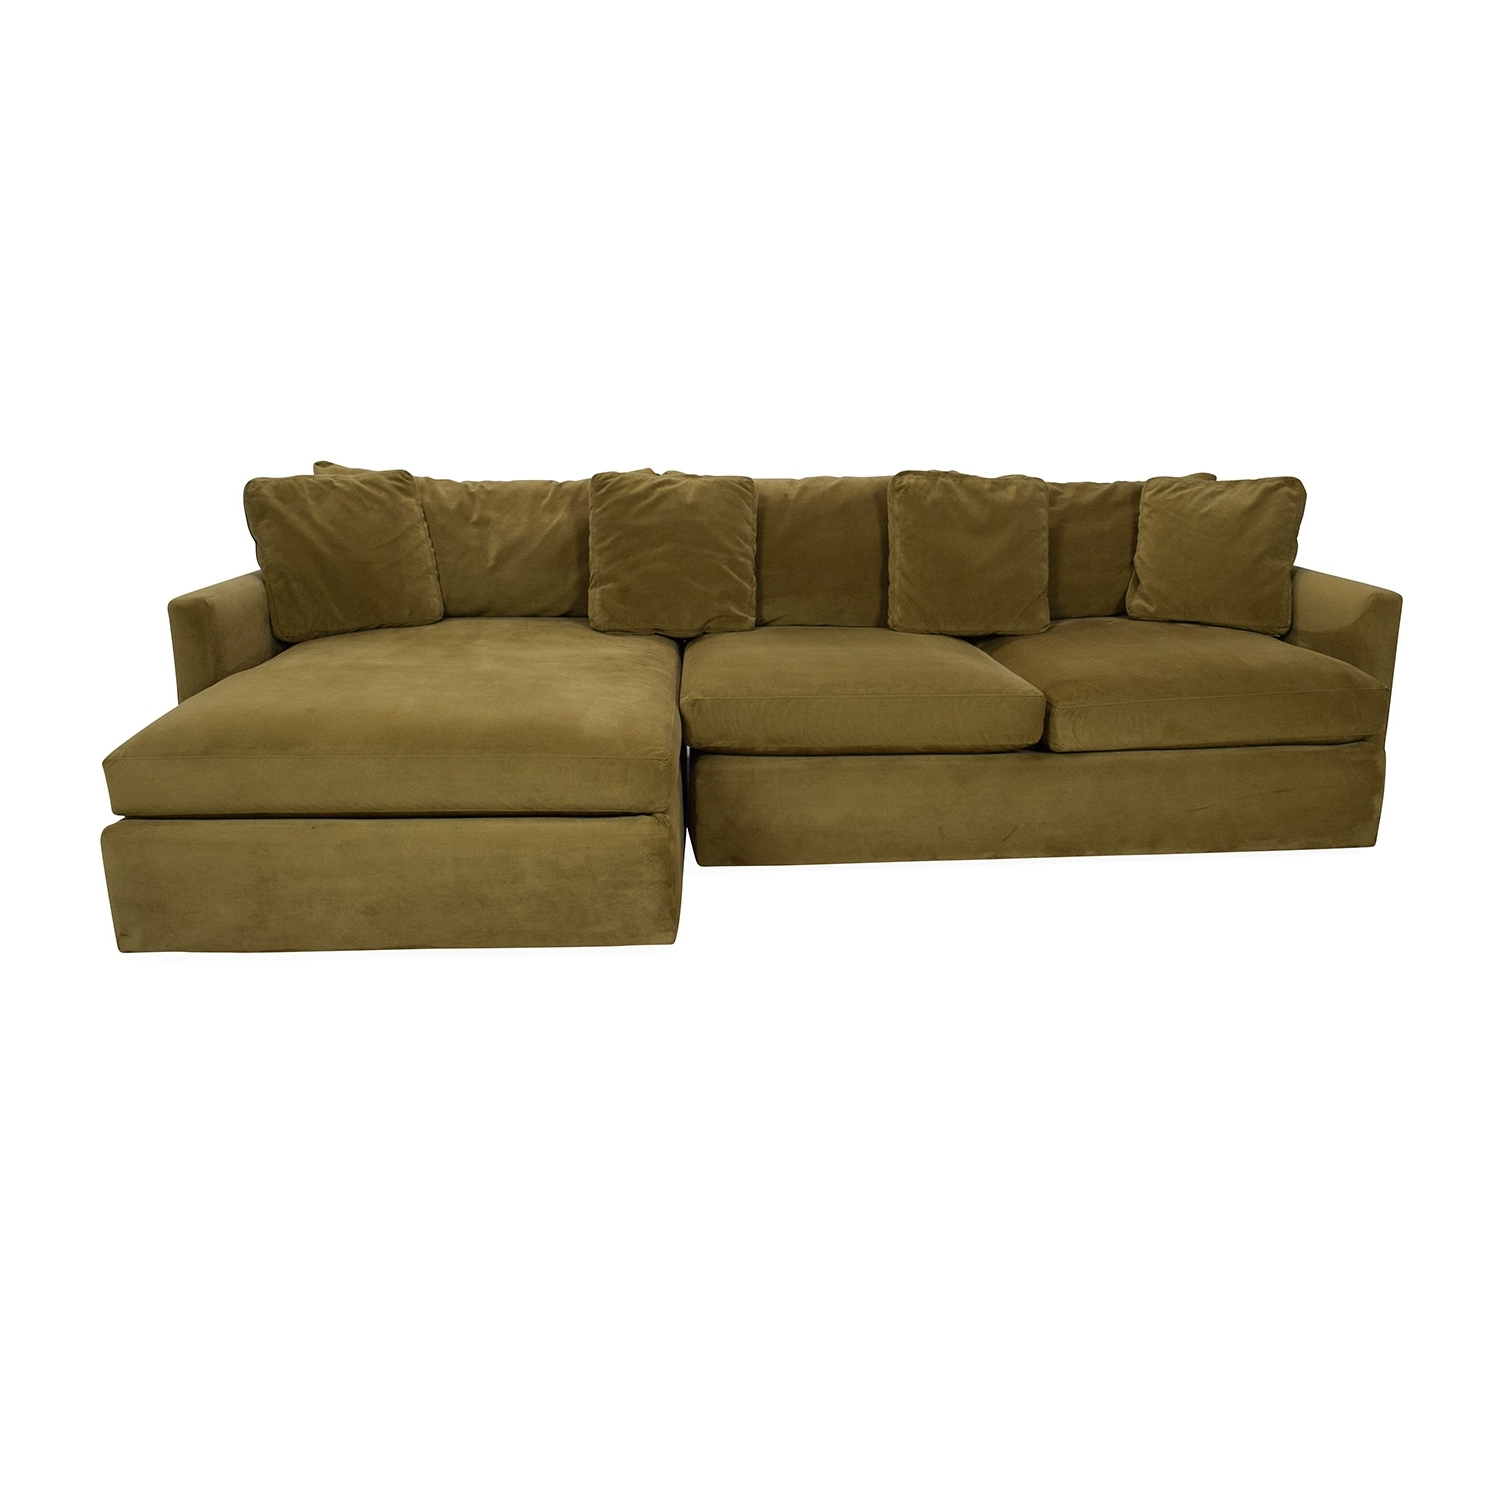 [%65% Off – Crate And Barrel Crate And Barrel Lounge Ii Sectional Inside Most Current Used Sectional Sofas|Used Sectional Sofas Inside Preferred 65% Off – Crate And Barrel Crate And Barrel Lounge Ii Sectional|Favorite Used Sectional Sofas Regarding 65% Off – Crate And Barrel Crate And Barrel Lounge Ii Sectional|Best And Newest 65% Off – Crate And Barrel Crate And Barrel Lounge Ii Sectional Regarding Used Sectional Sofas%] (View 1 of 20)